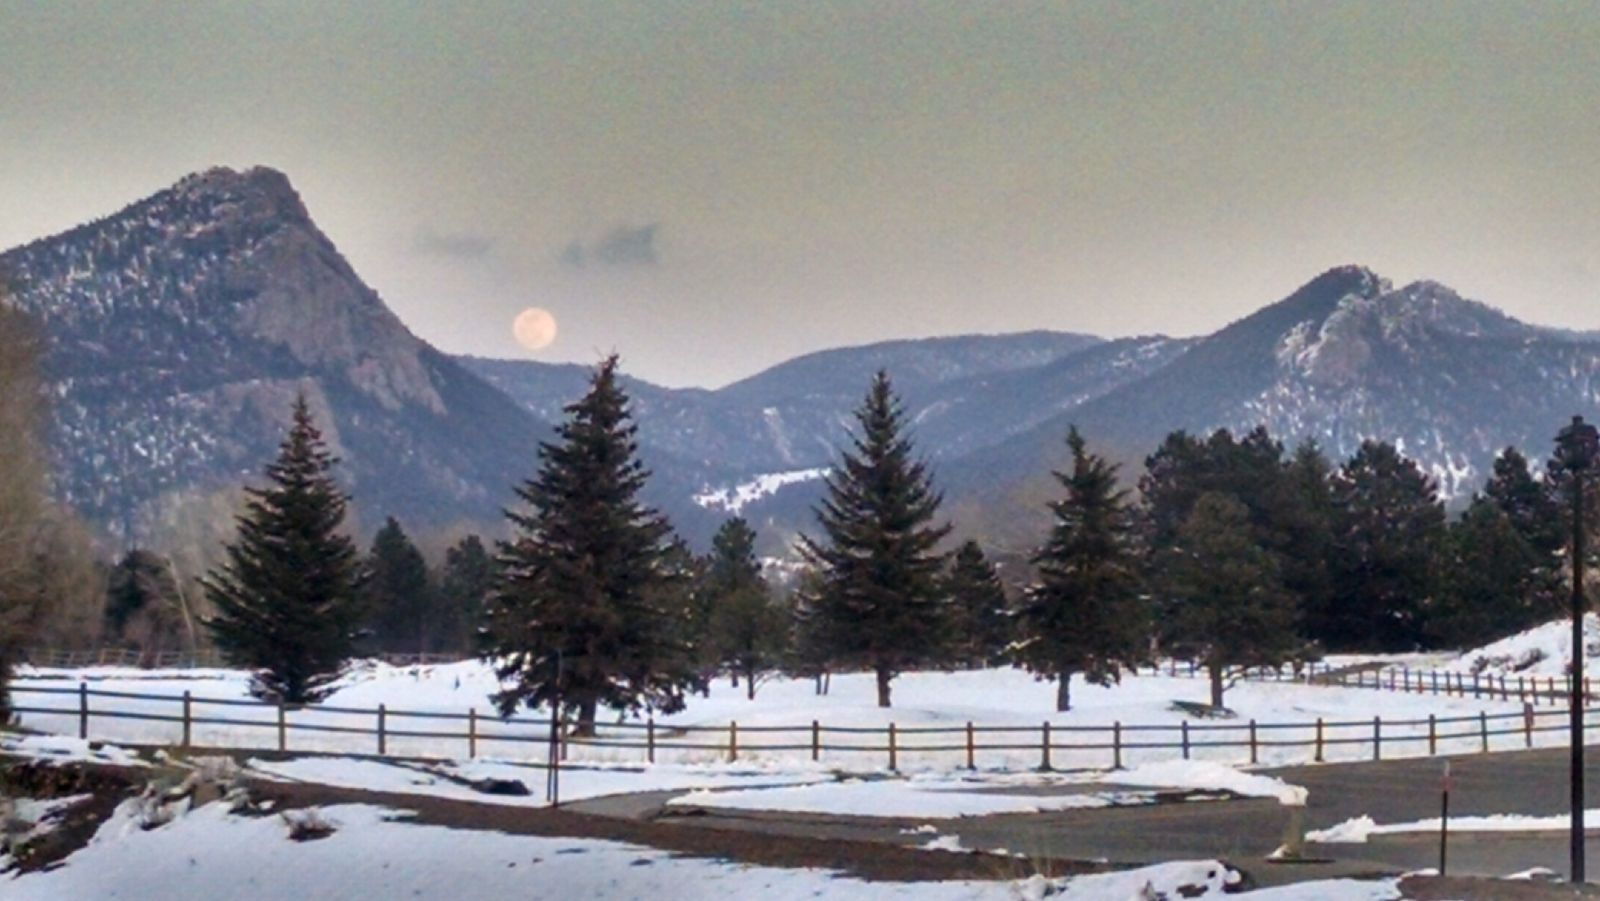 ESTES PARK REAL ESTATE AGENT,ESTES PARK REALTOR,CARRIAGE HILLS ESTES PARK,houses for sale ESTES PARK,homes for sale estes park, Log Cabin estes park, estes park real estate, estes park realtor, DRAKE, LYONS real estate, GLEN HAVEN real estate, carriage hills,